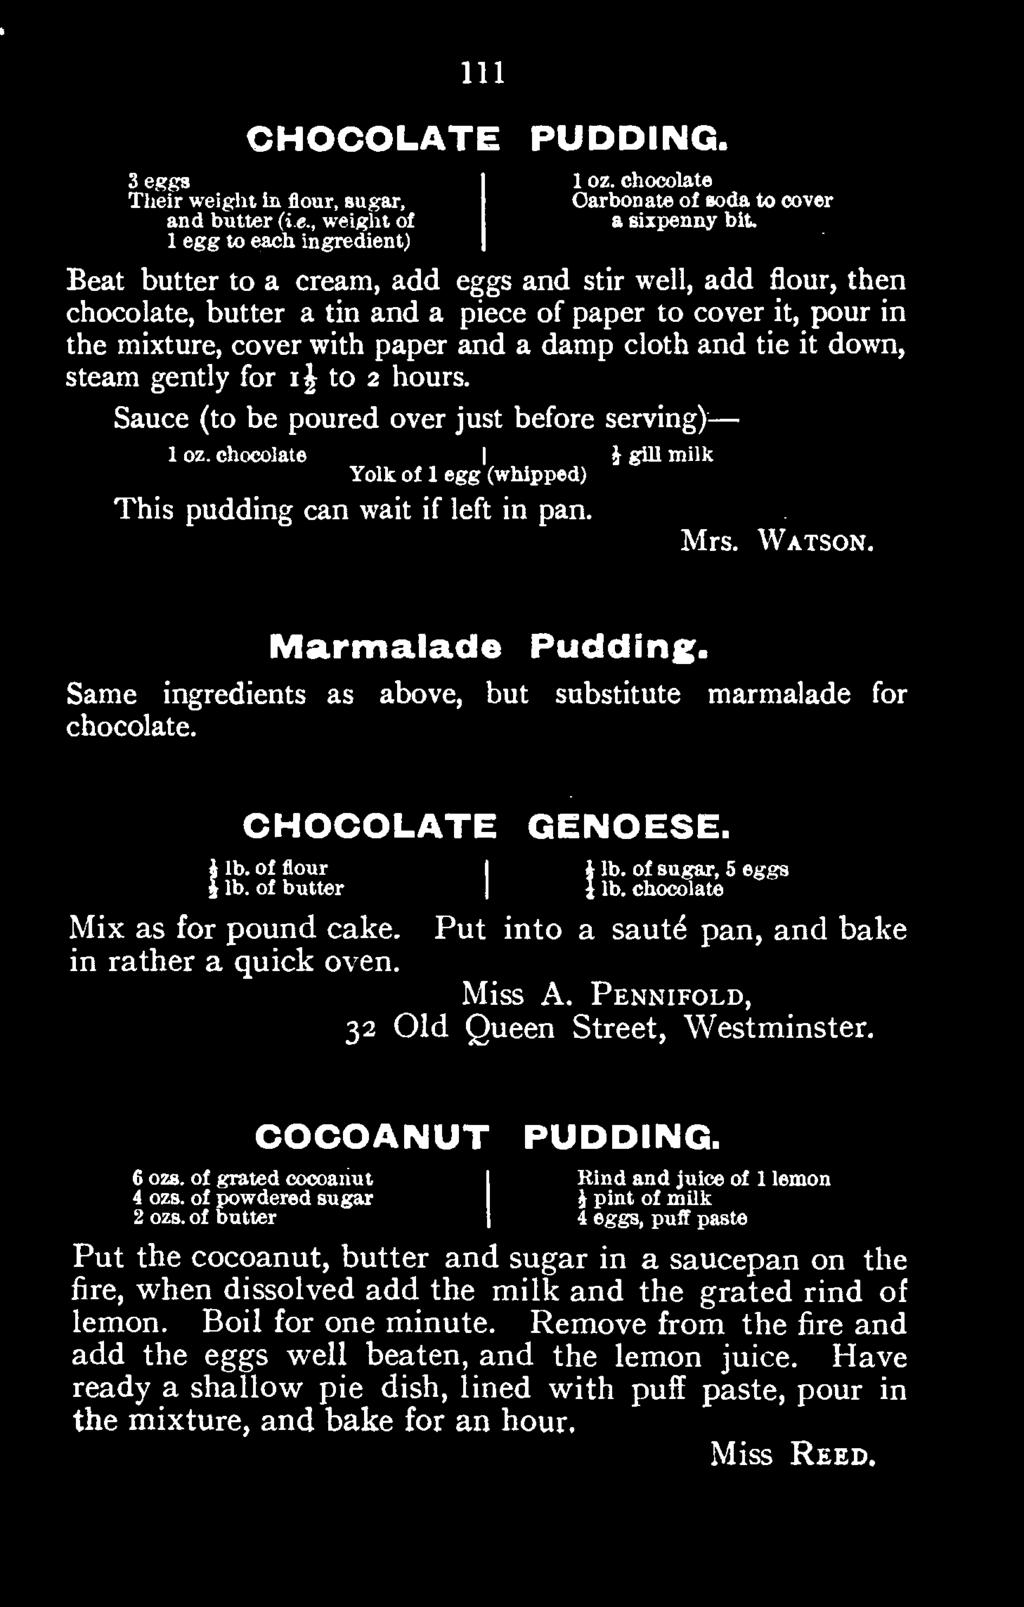 Put into a saute pan, and bake in rather a quick oven. Miss A. Pennifold, 32 Old Queen Street, Westminster. COCOANUT PUDDING.